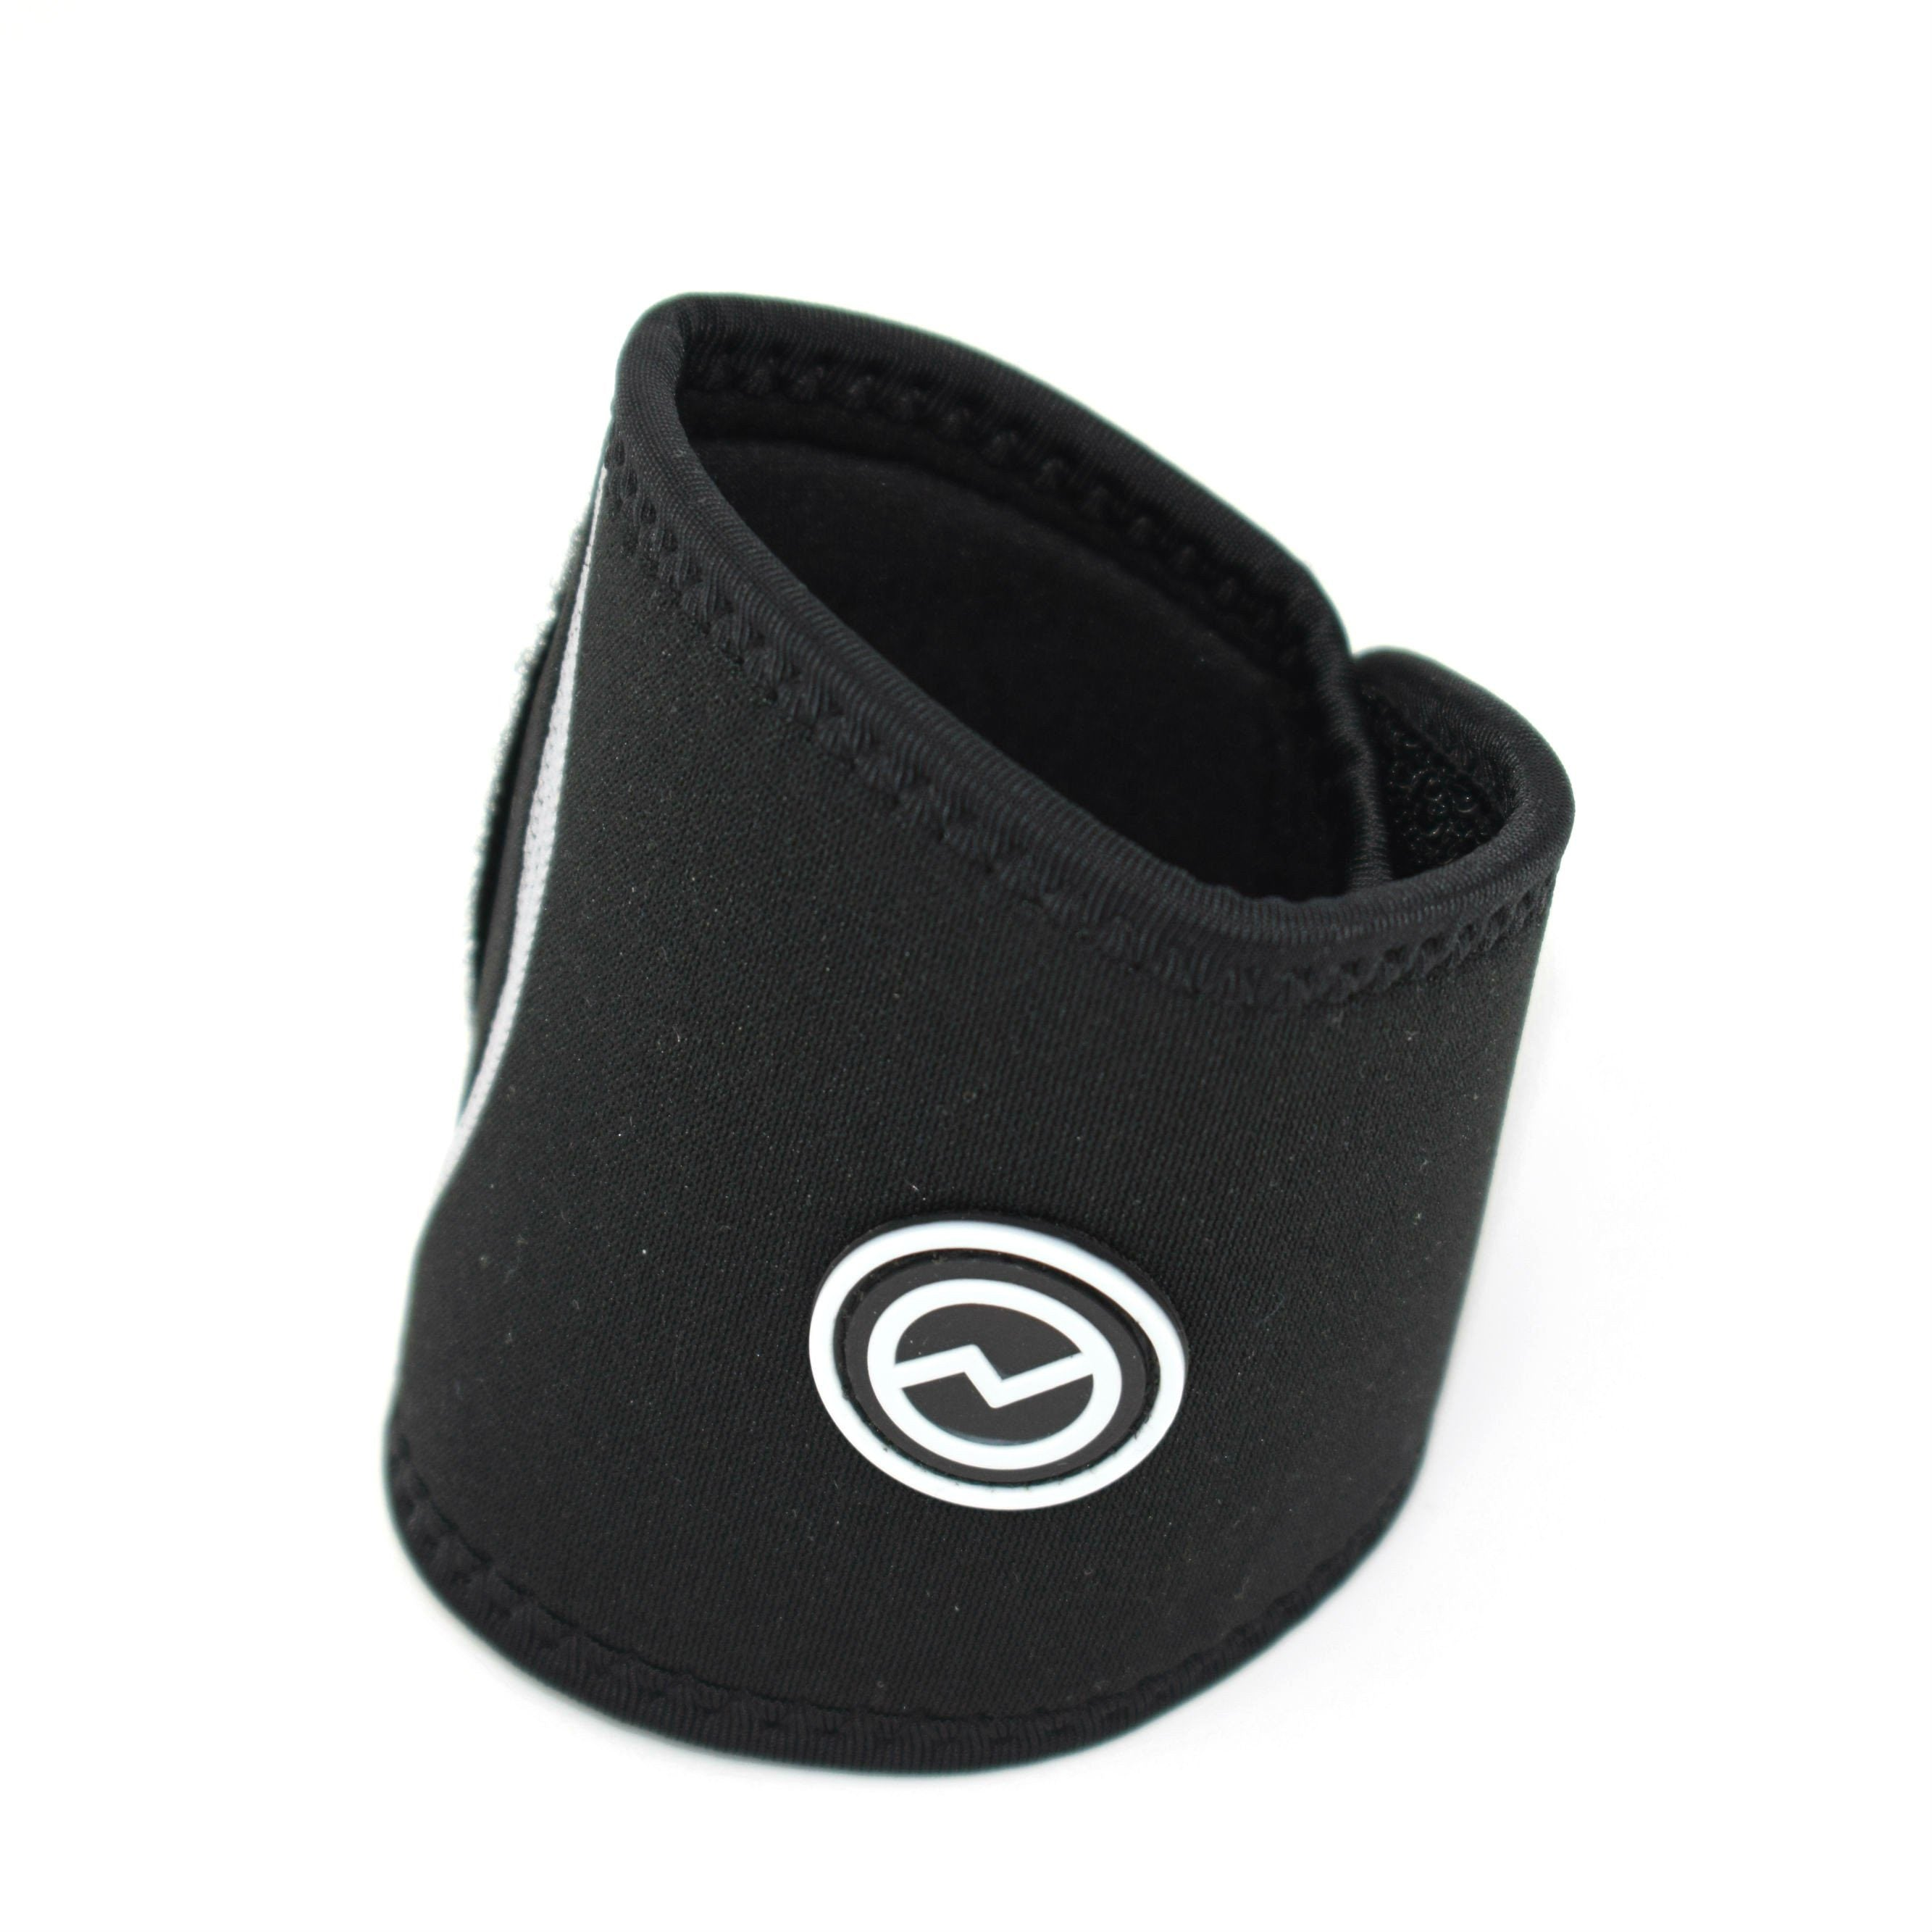 Max Recovery Adjustable Wrist Support for Tendonitis & All Sorts of Wrist Ailments